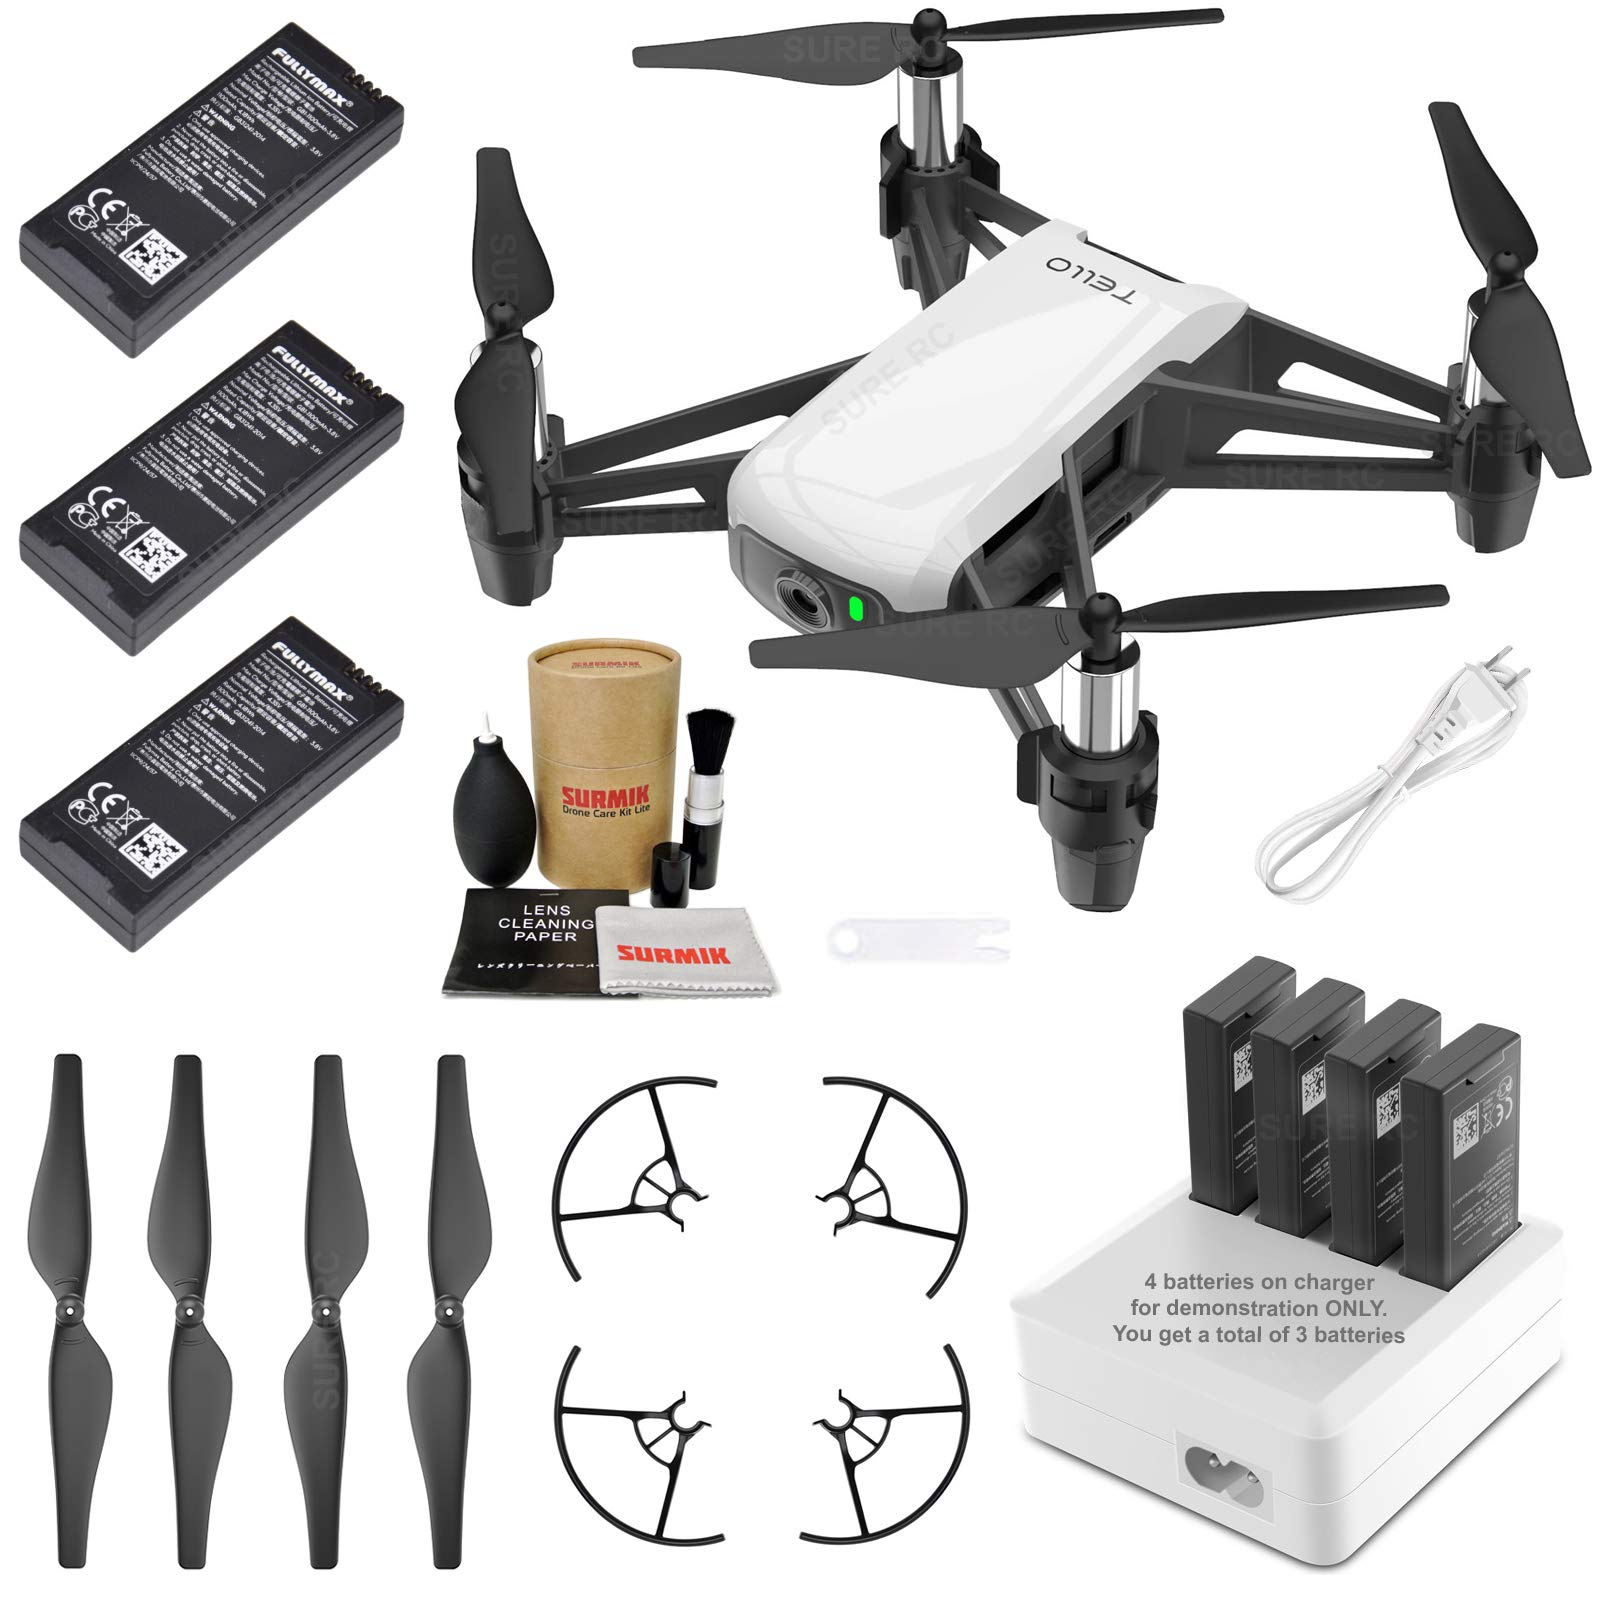 Tello Drone Quadcopter Elite Combo with 3 Batteries, 4 Port Charger and More by DJI